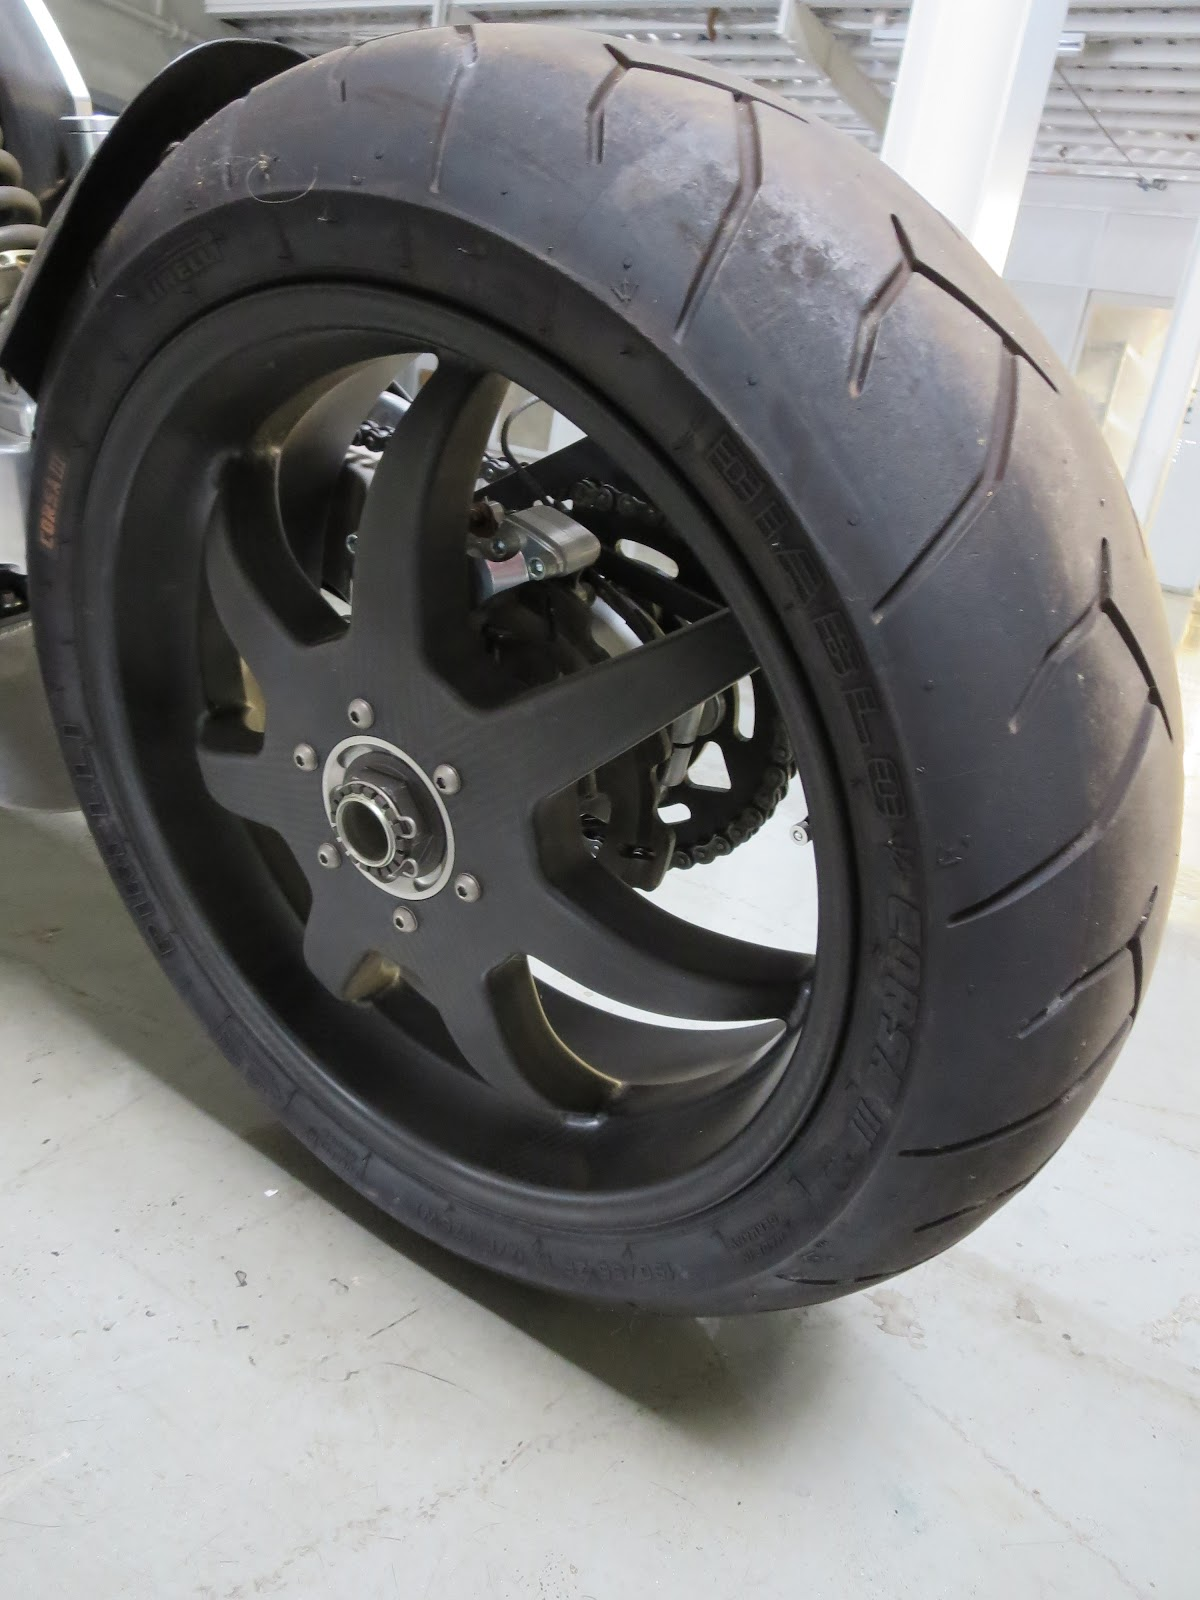 Confederate Wraith B120 Carbon-Fibre Rear Wheel